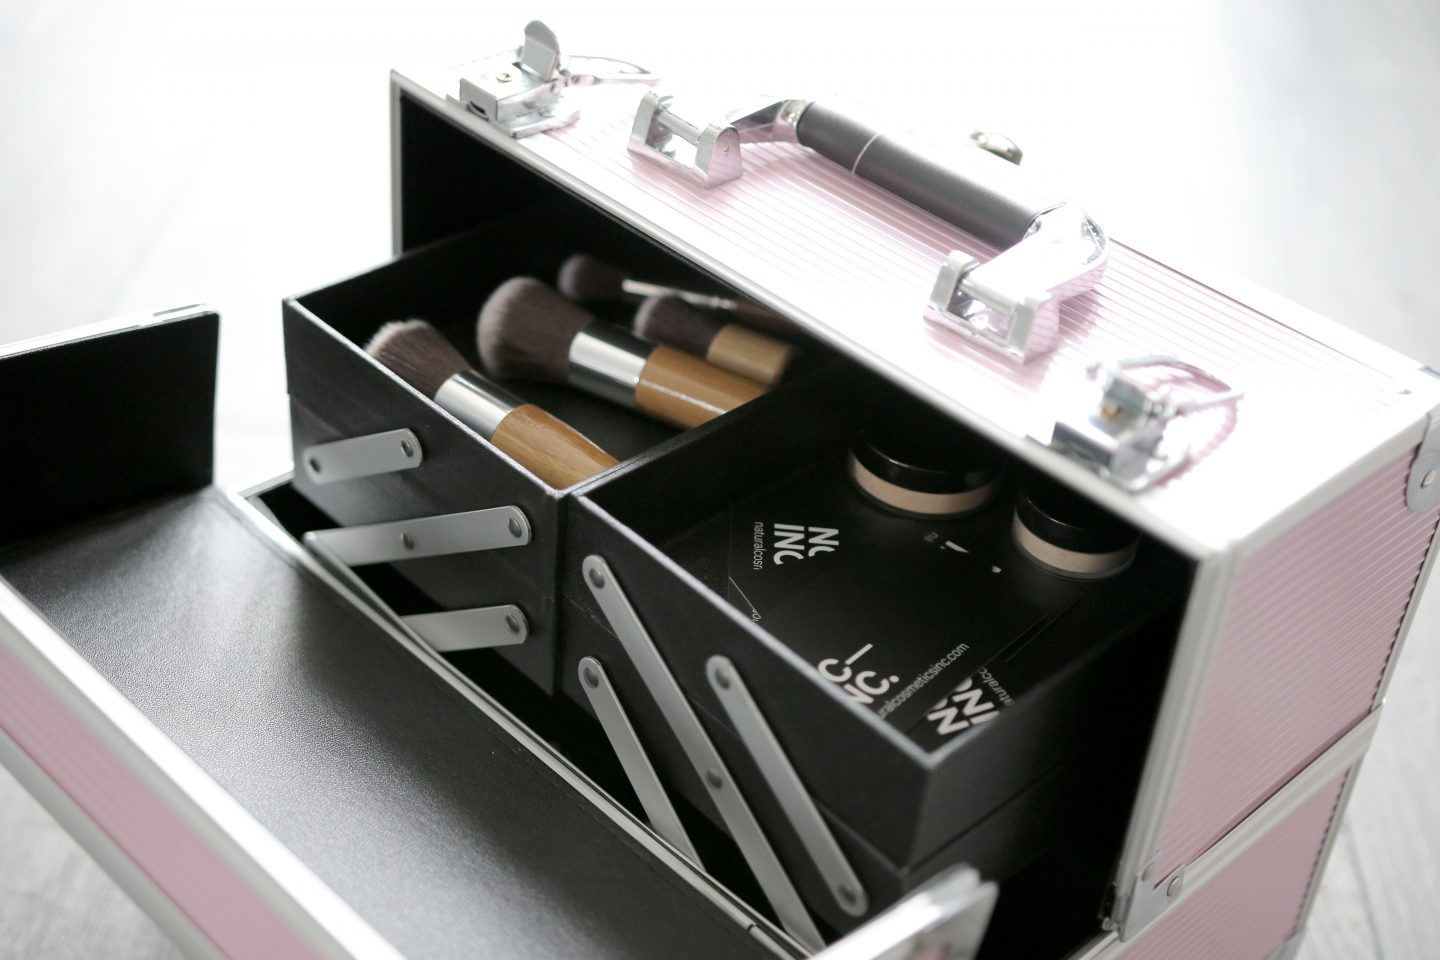 Professional makeup organization kit with makeup brushes and foundation